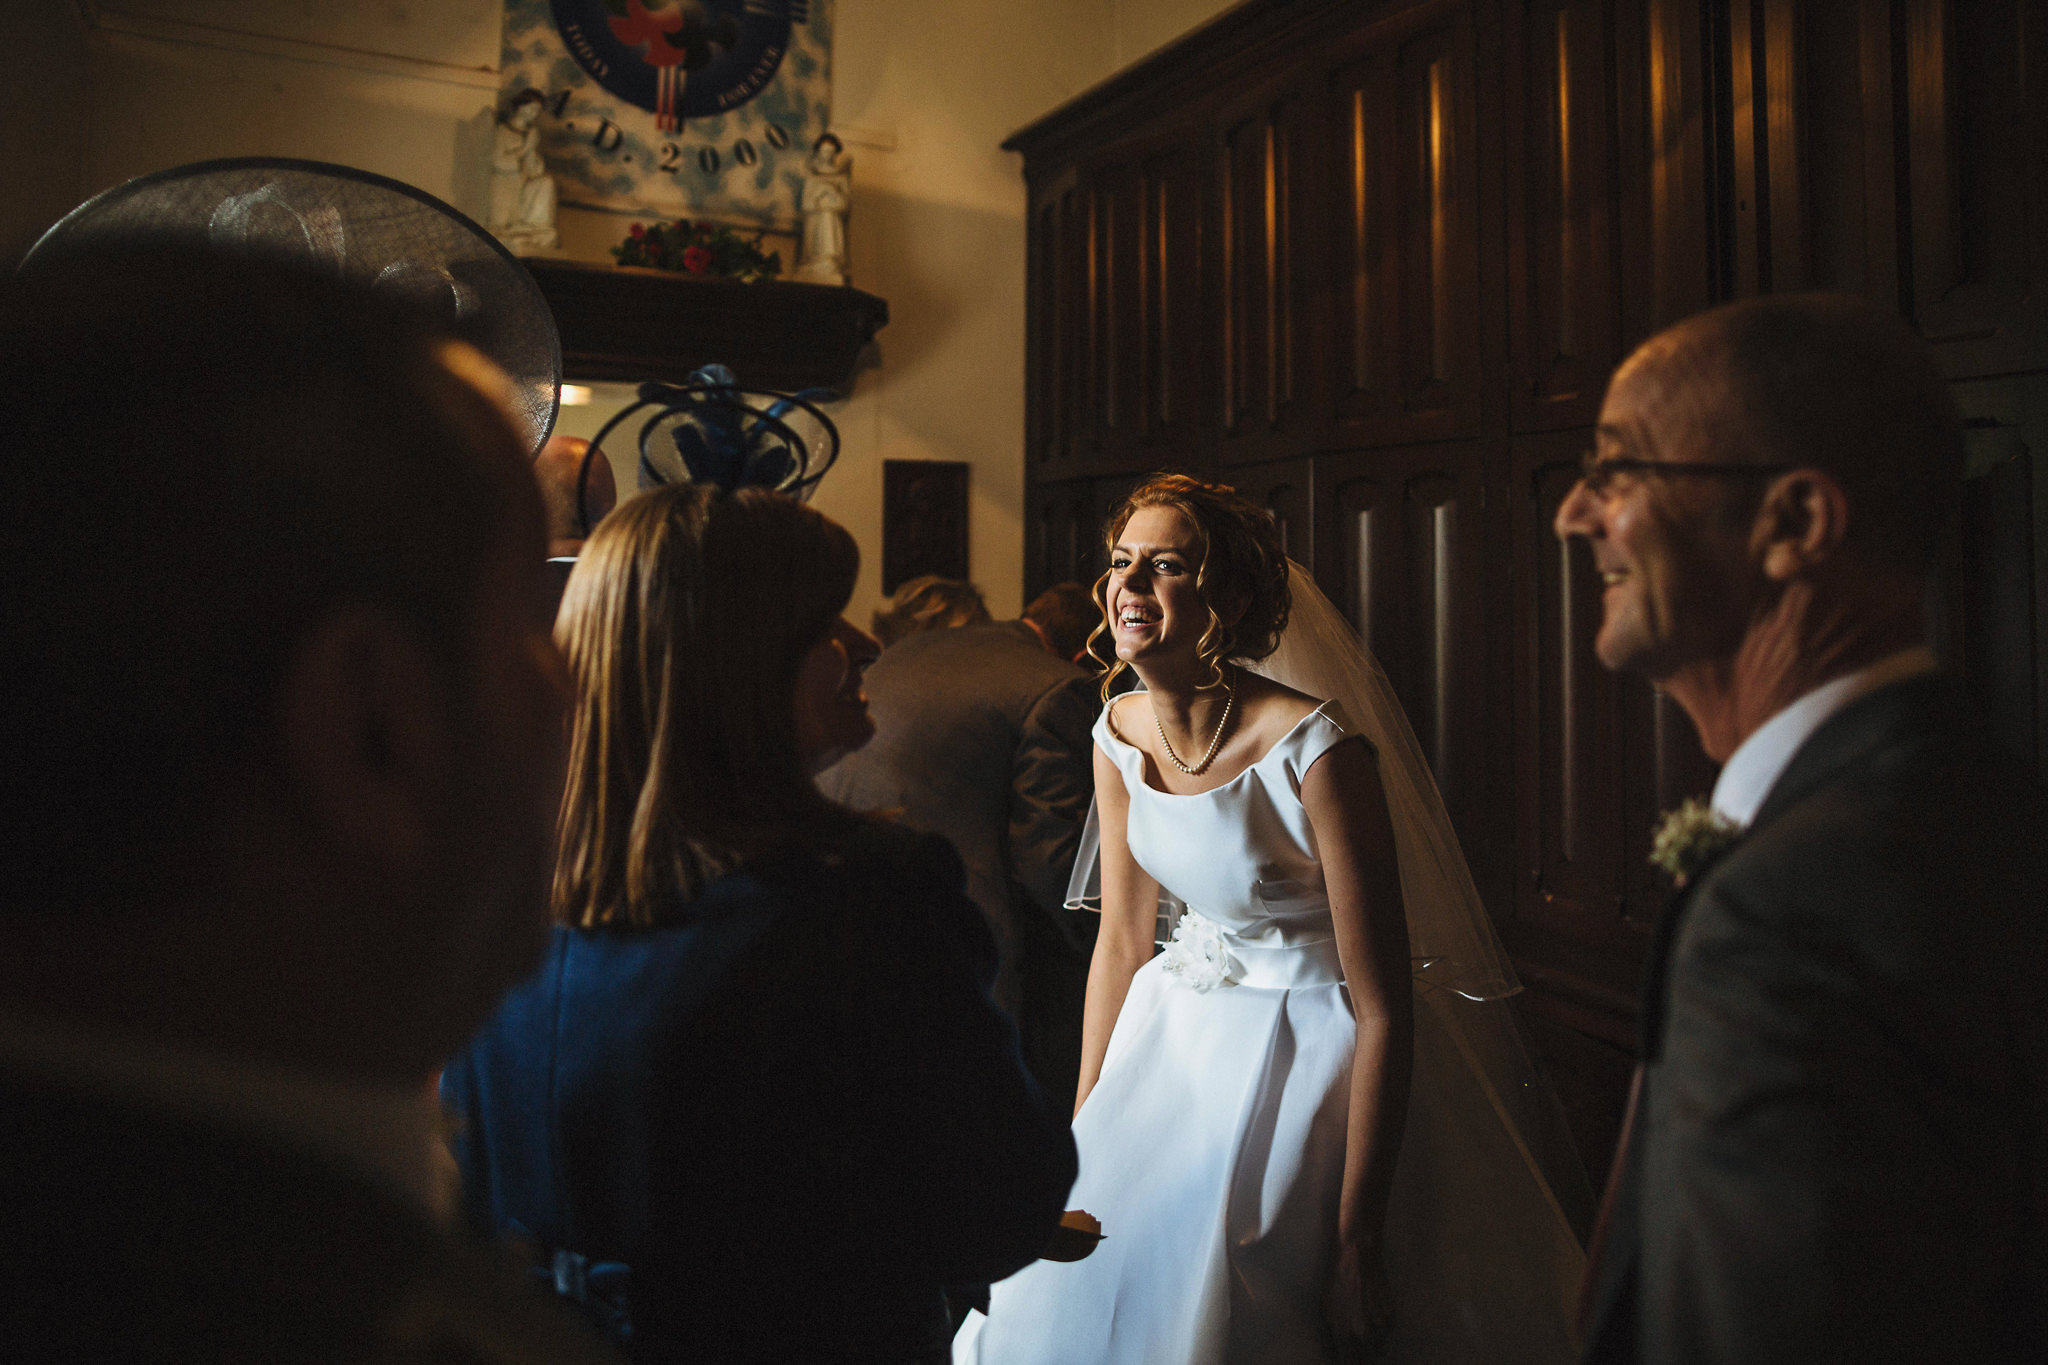 paul-marbrook-best-wedding-photographer-north-wales-136014